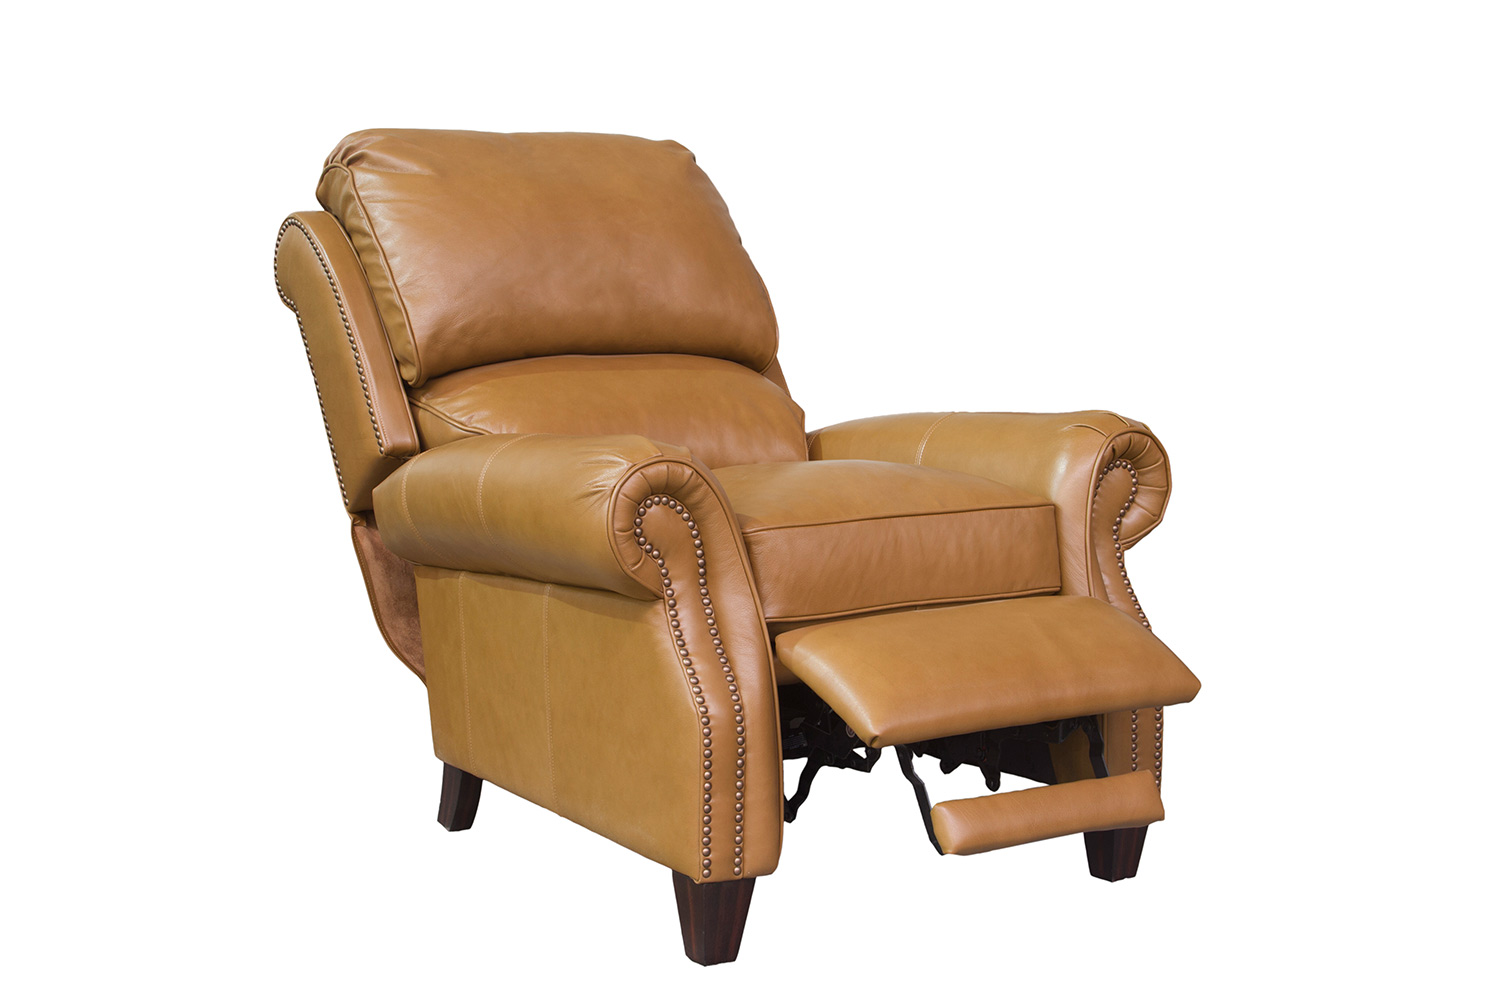 Barcalounger Churchill Recliner Chair - Shoreham Ponytail/All Leather